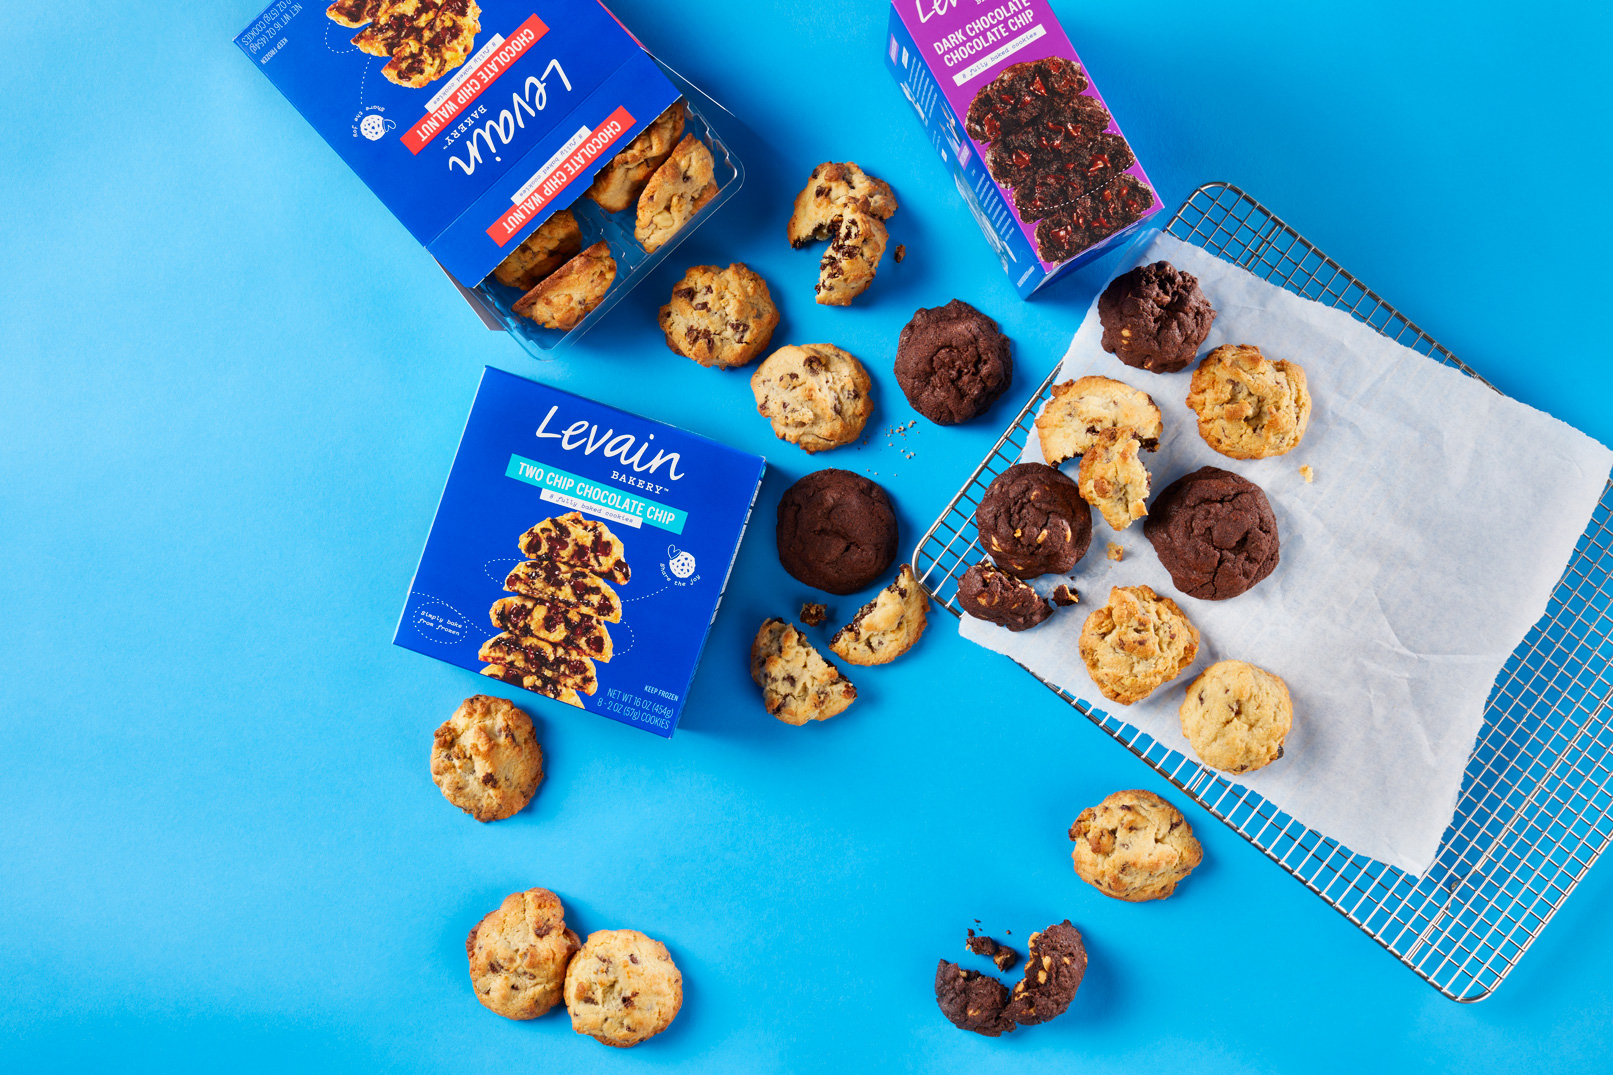 Whole Foods and an iconic NYC bakery team up to sell decadent cookies